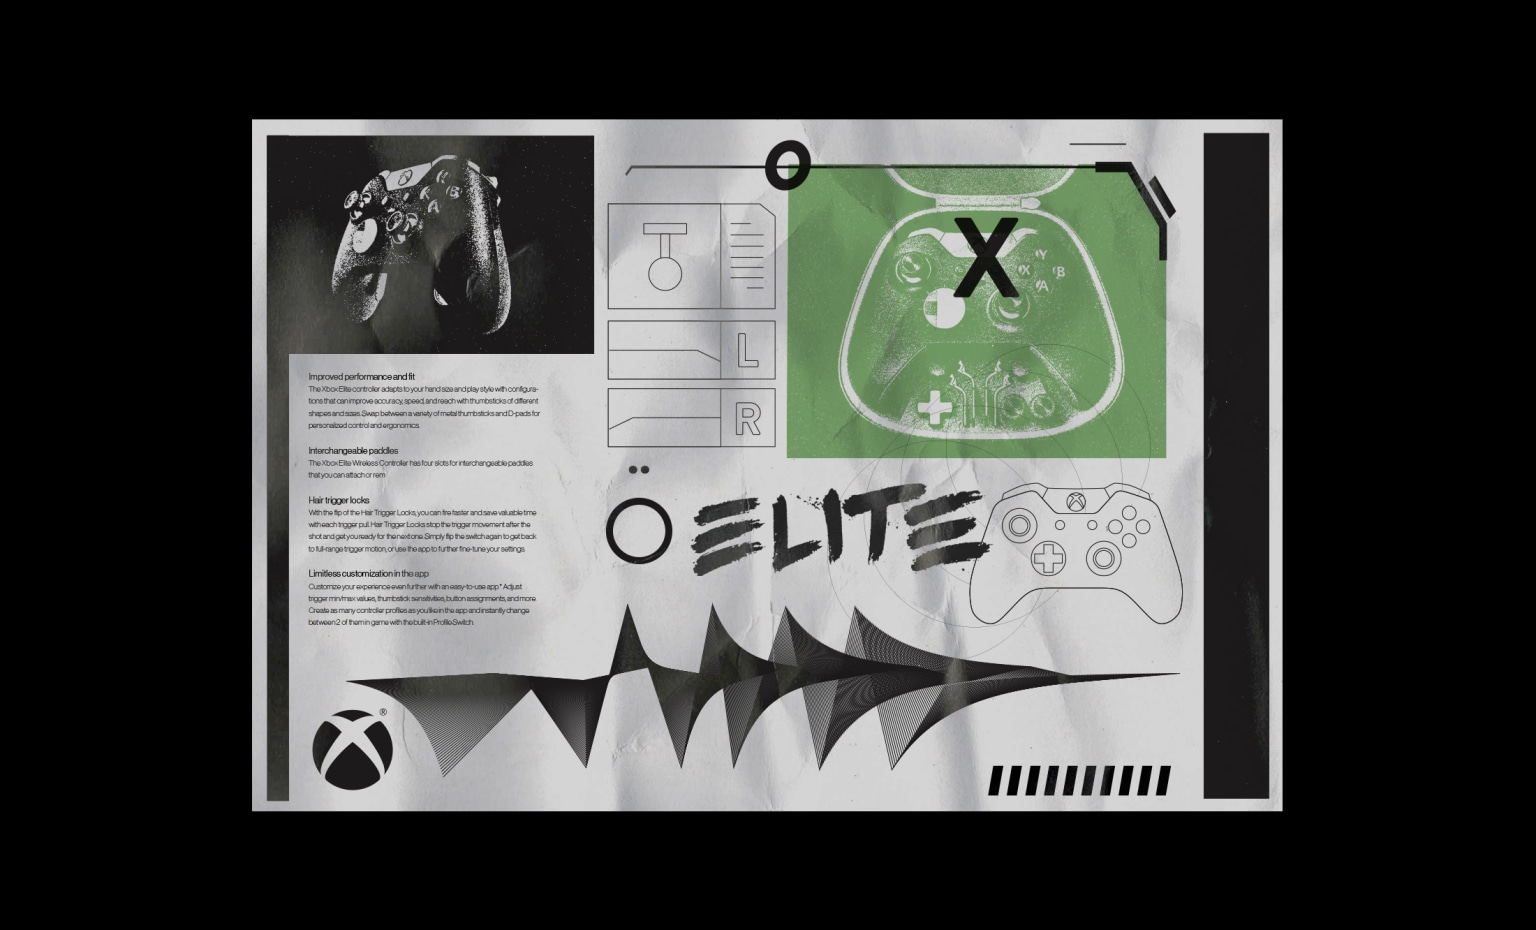 Xbox Elite Launch